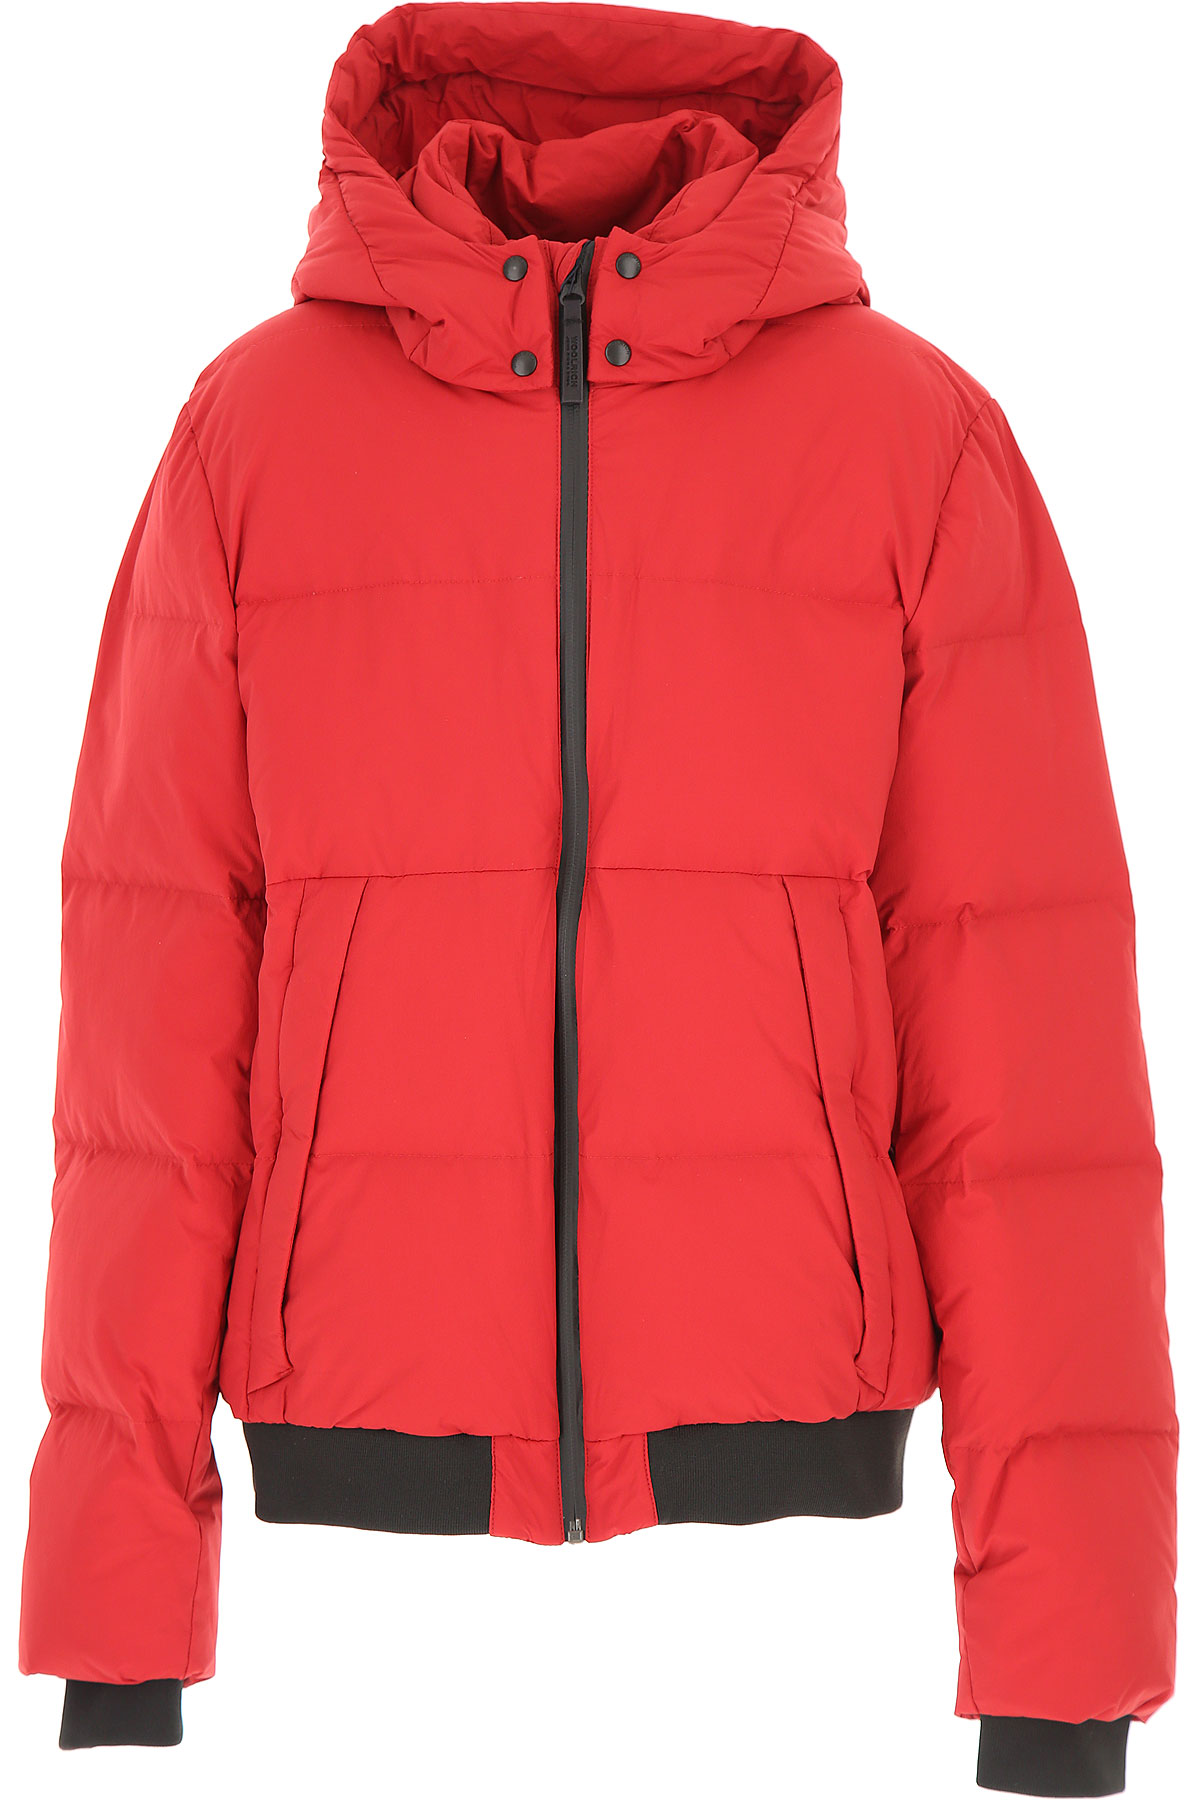 Image of Woolrich Boys Down Jacket for Kids, Puffer Ski Jacket, Red, polyamide, 2017, 10Y 14Y 8Y